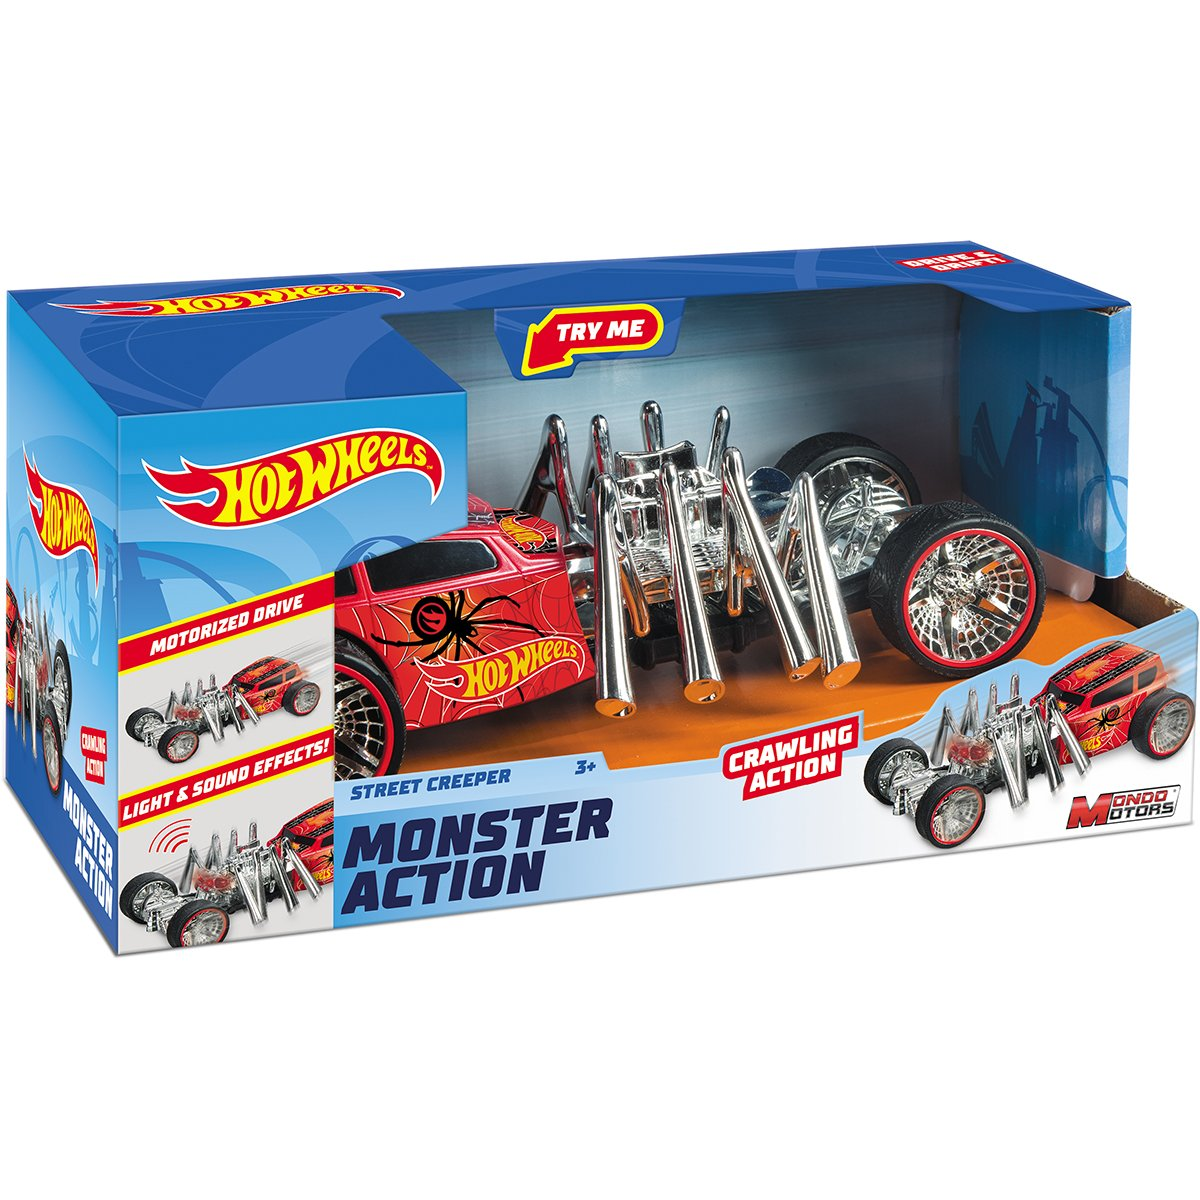 Masinuta cu lumini si sunete Hot Wheels, Street Creeper